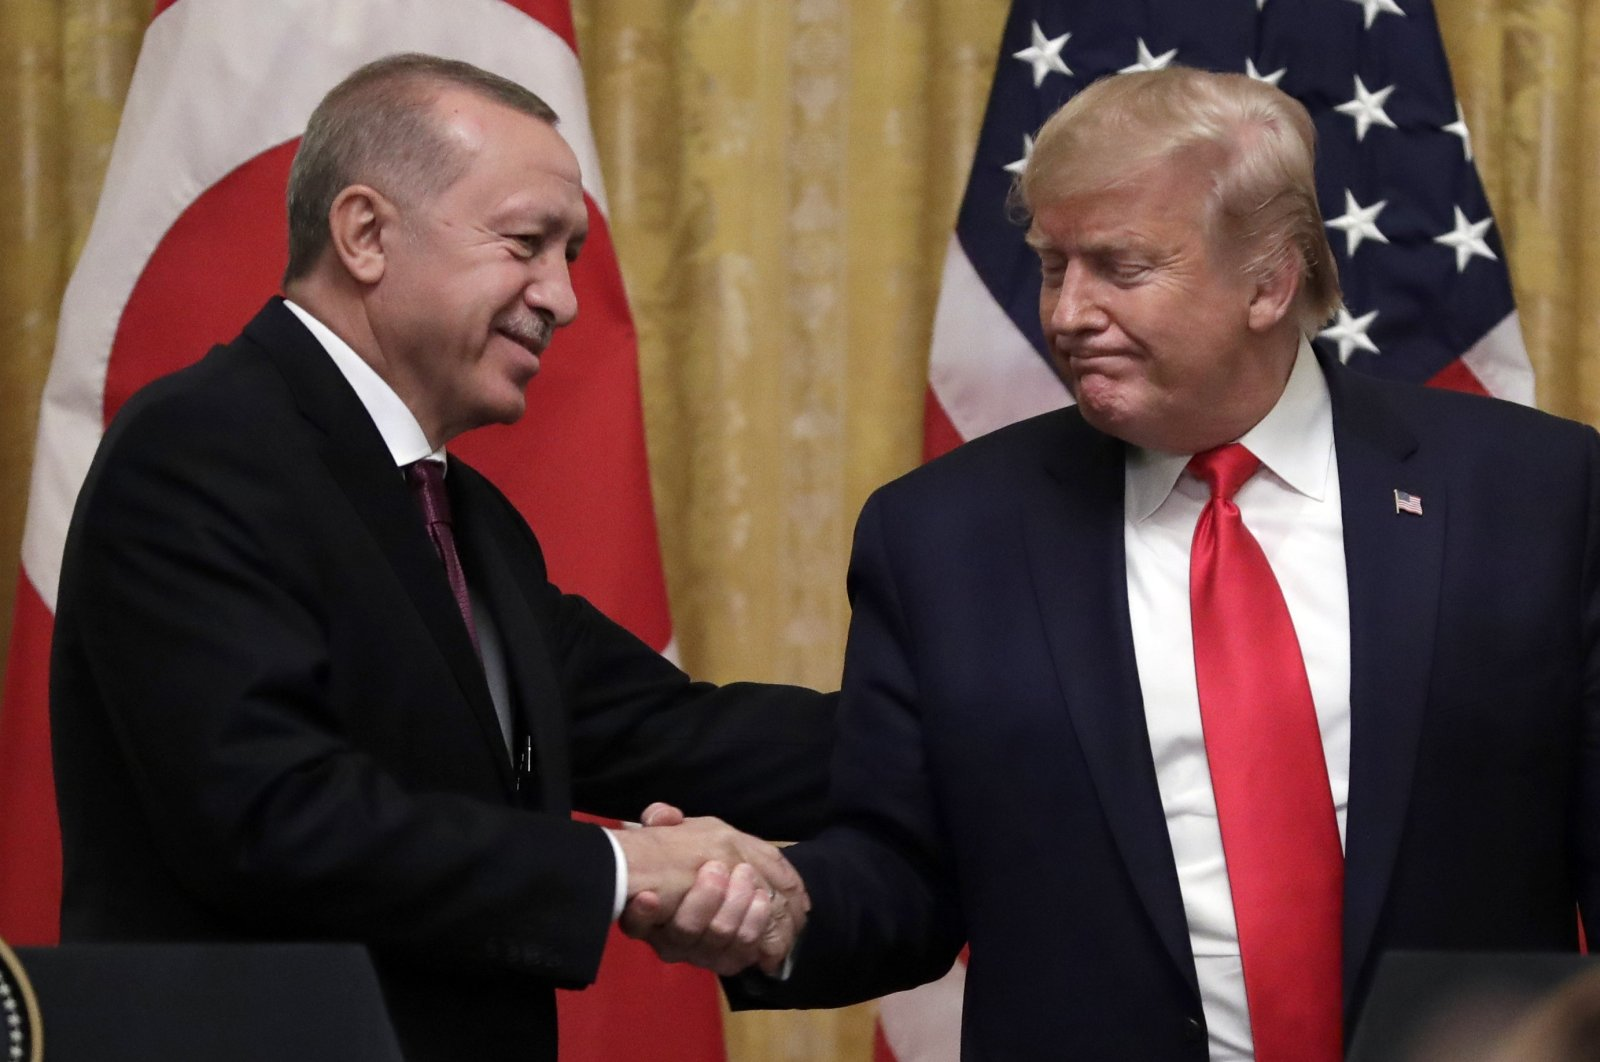 President Recep Tayyip Erdoğan shakes hands with U.S. President Donald Trump after a news conference in the White House, Nov. 13, 2019. (AP Photo)